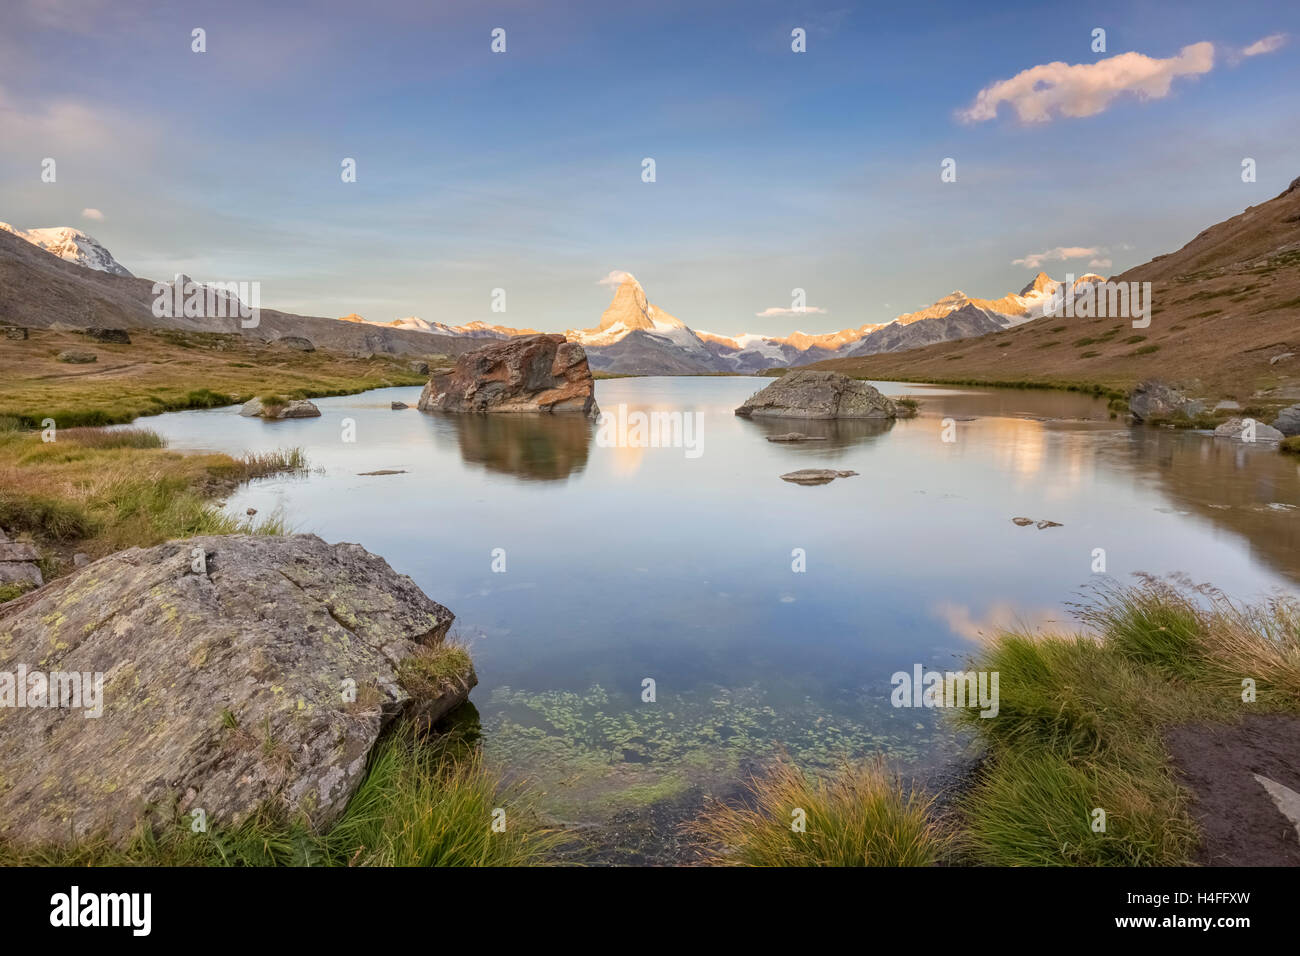 Sunrise on the Matterhorn at Stellisee Lake, Zermatt, Switzerland. - Stock Image